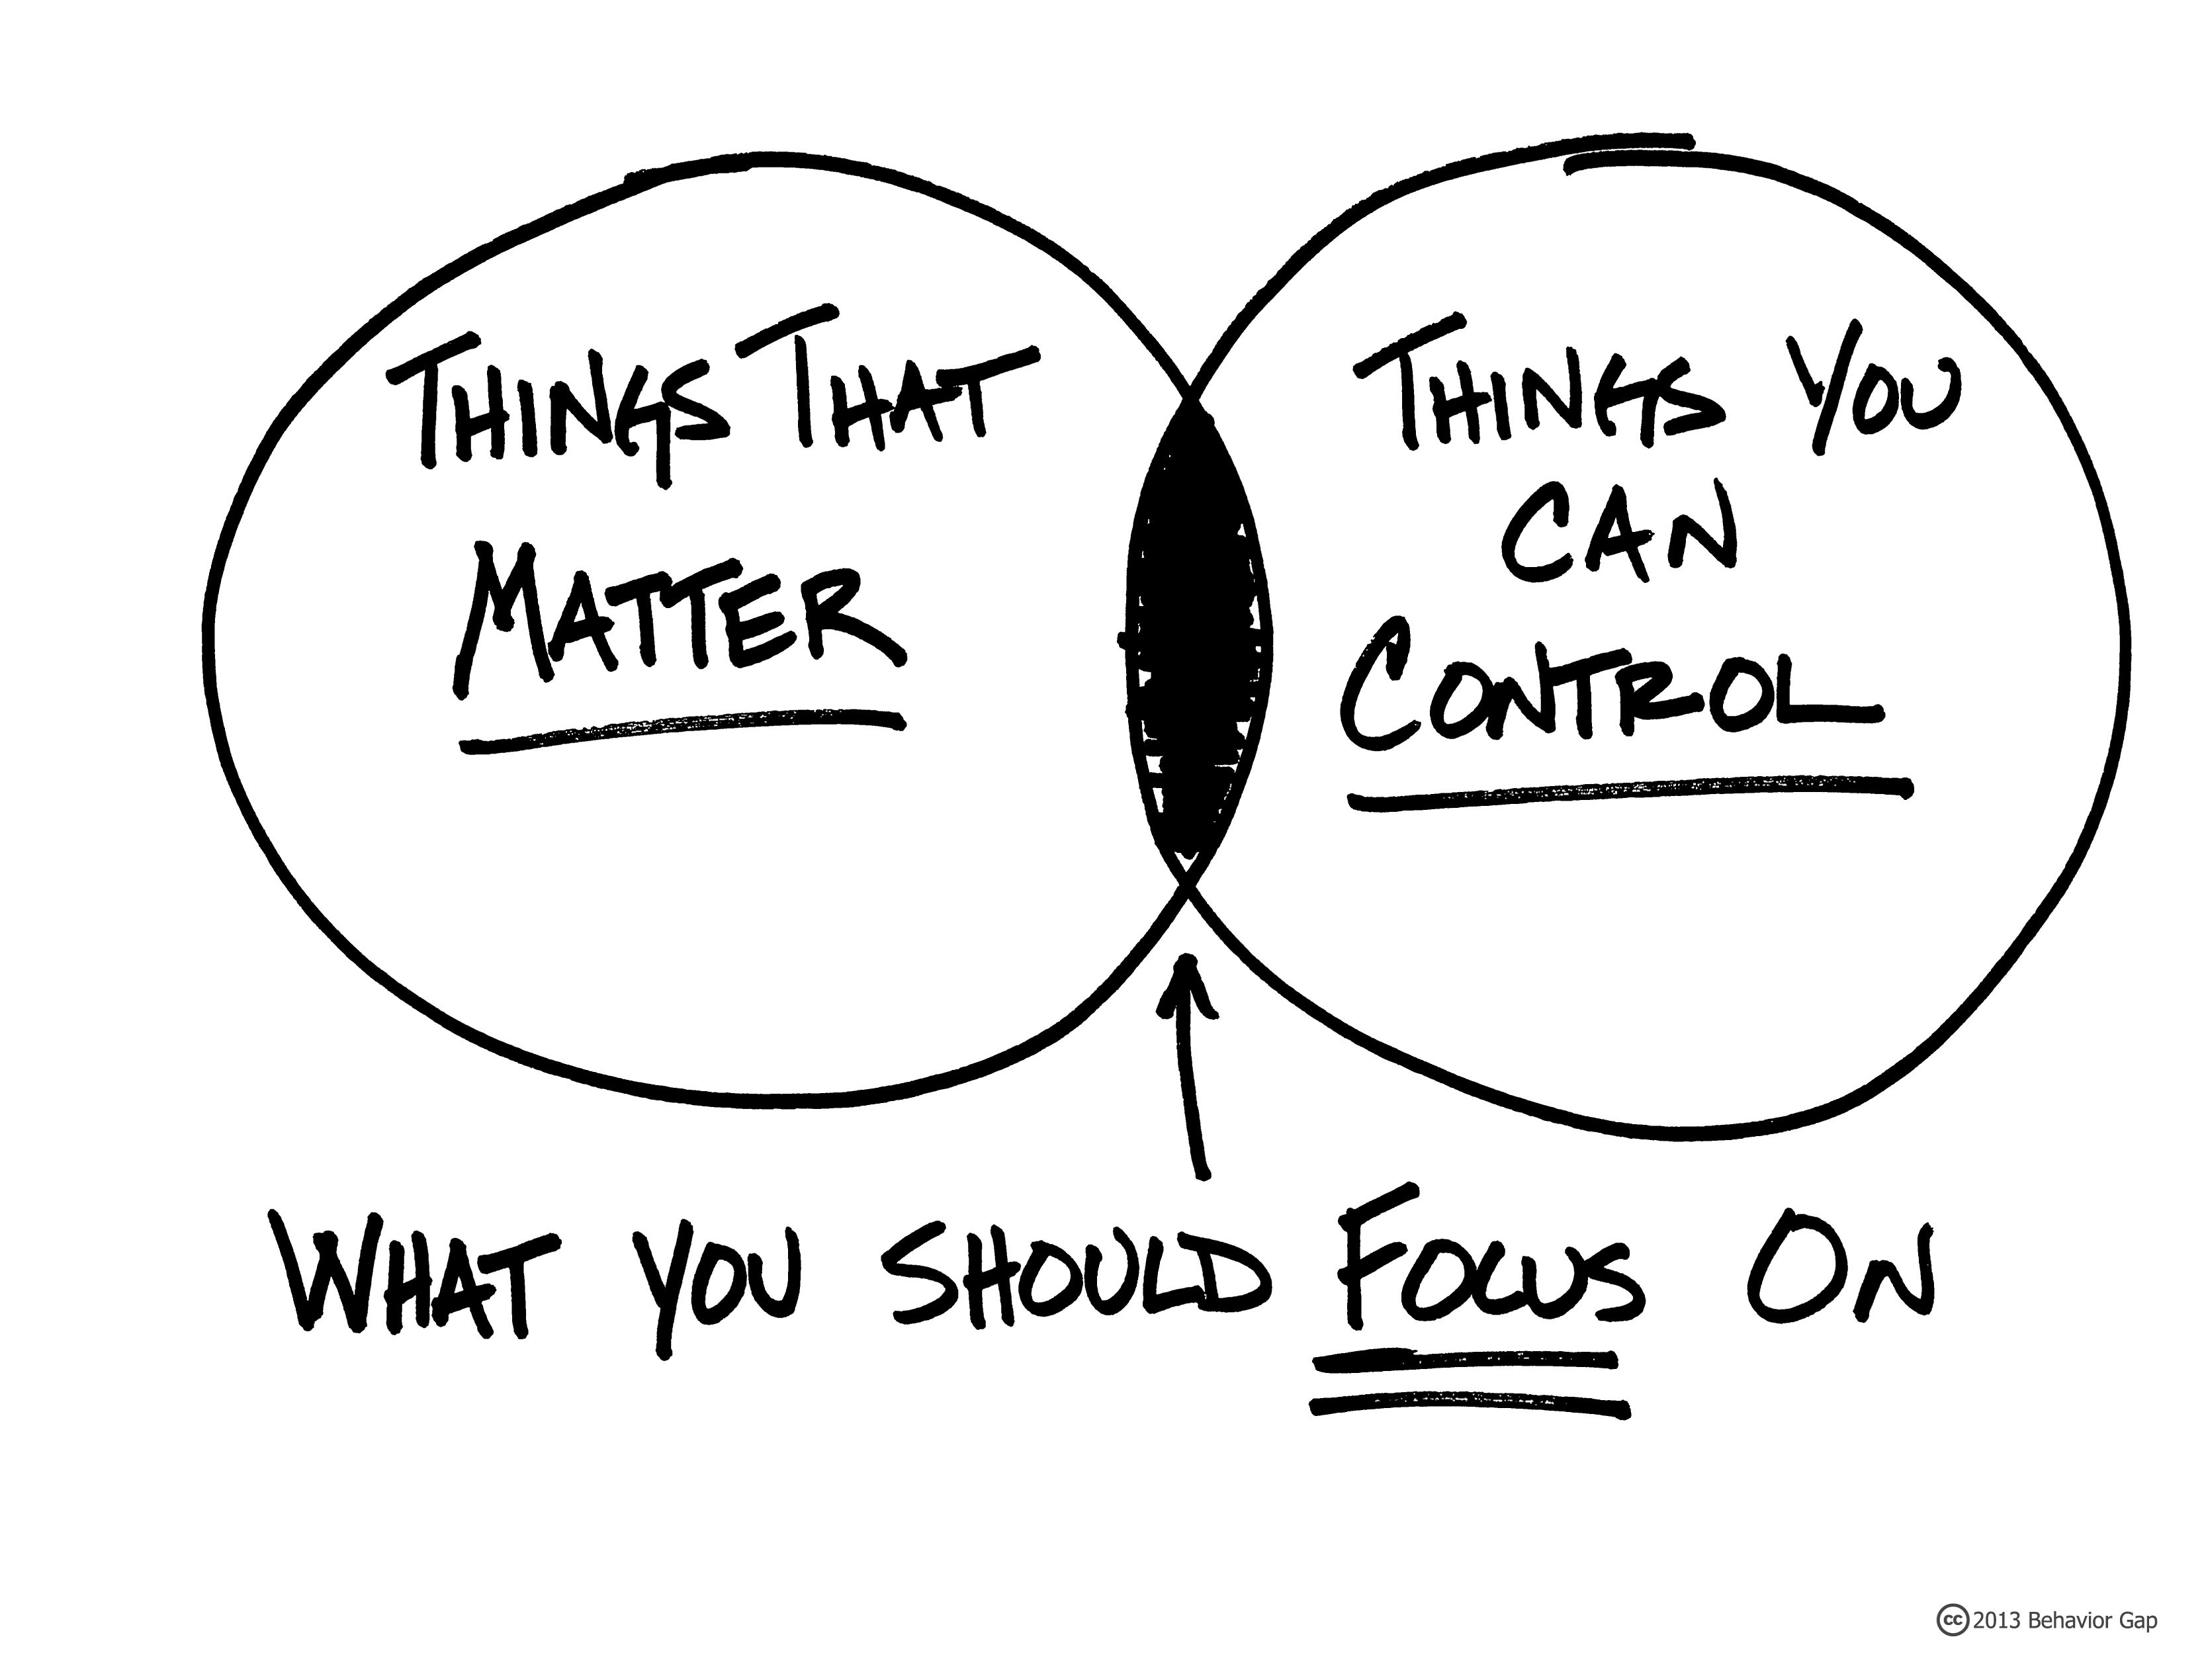 Focus on things that are important and matter